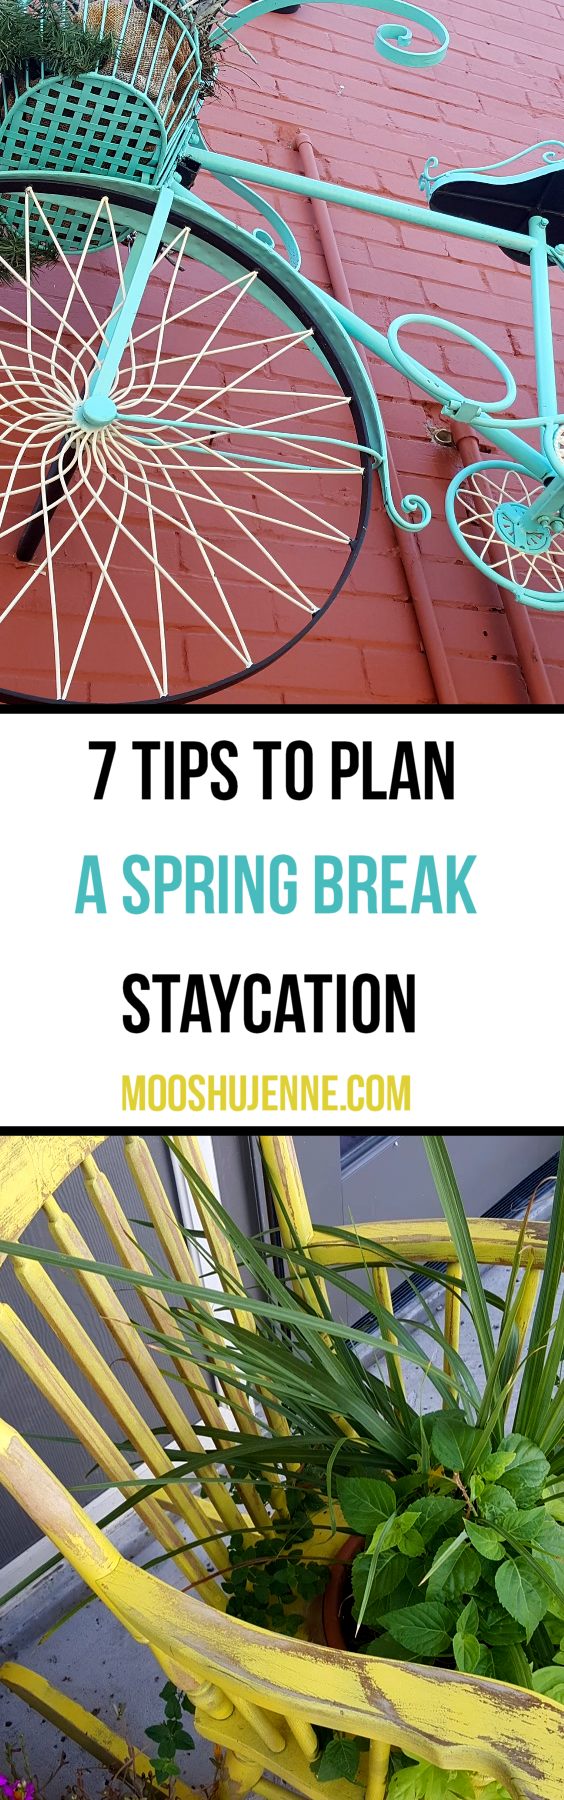 7 Tips To Plan A Spring Break Staycation